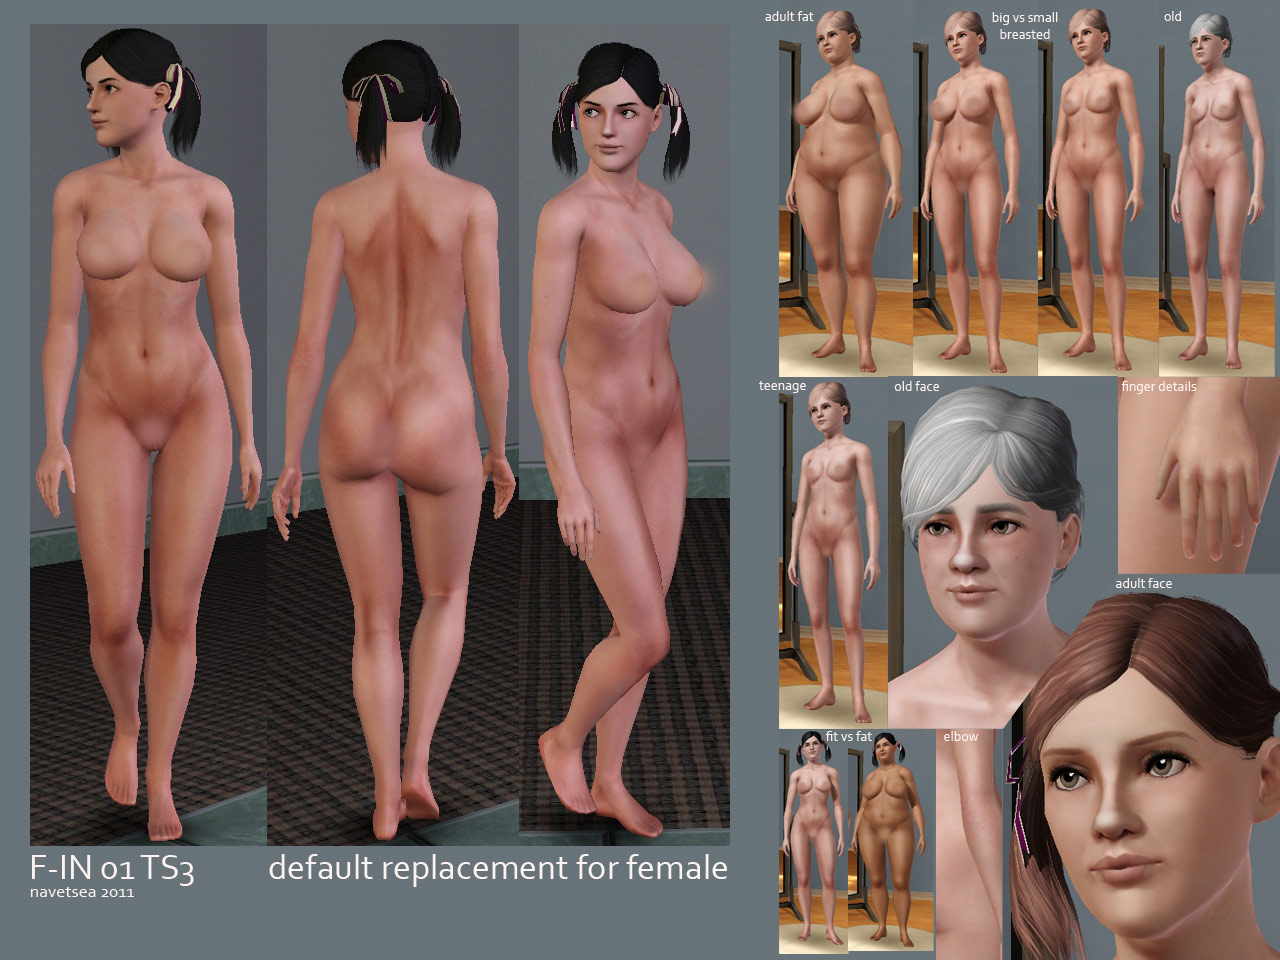 Ts3 nude patch hentai gallery